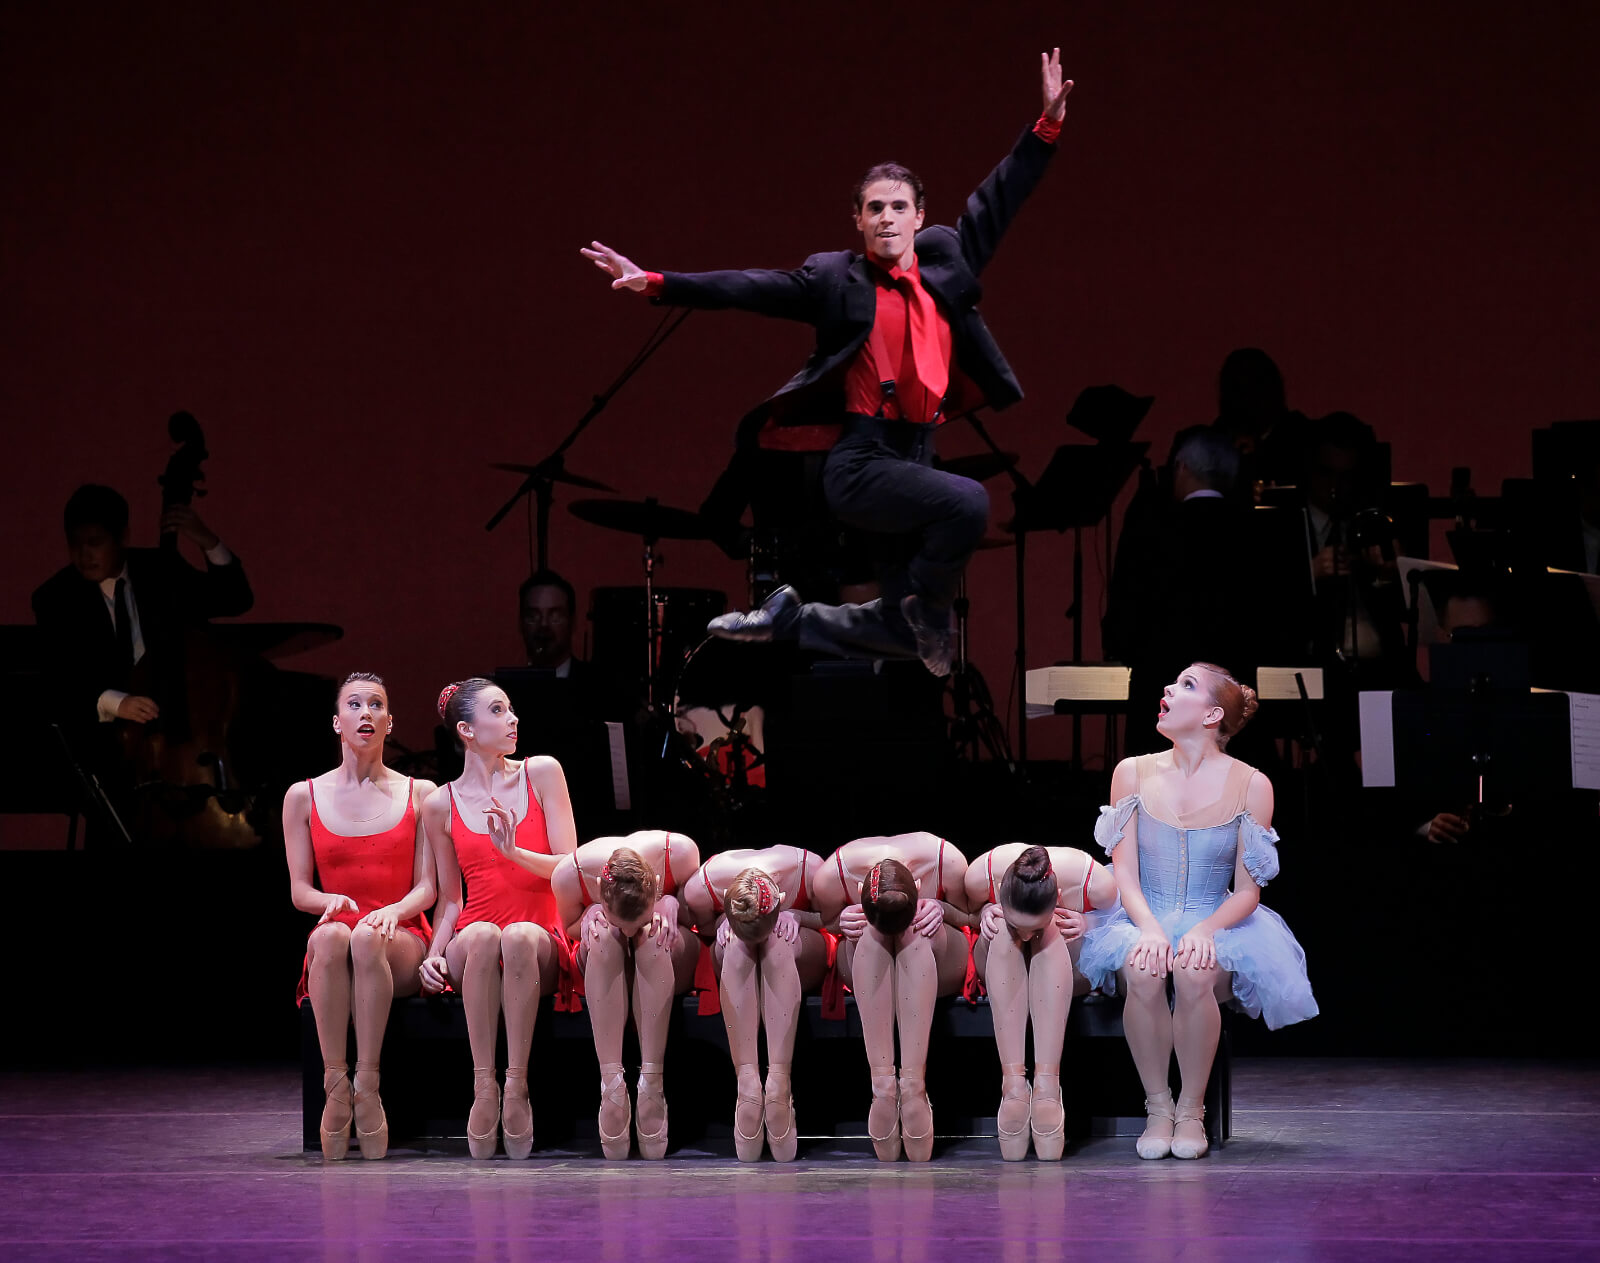 """Sébastien Marcovici leaps over the flappers in """"It Don't Mean a Thing if it Ain't Got That Swing"""". He is dressed in a black suit with a bright red tie."""